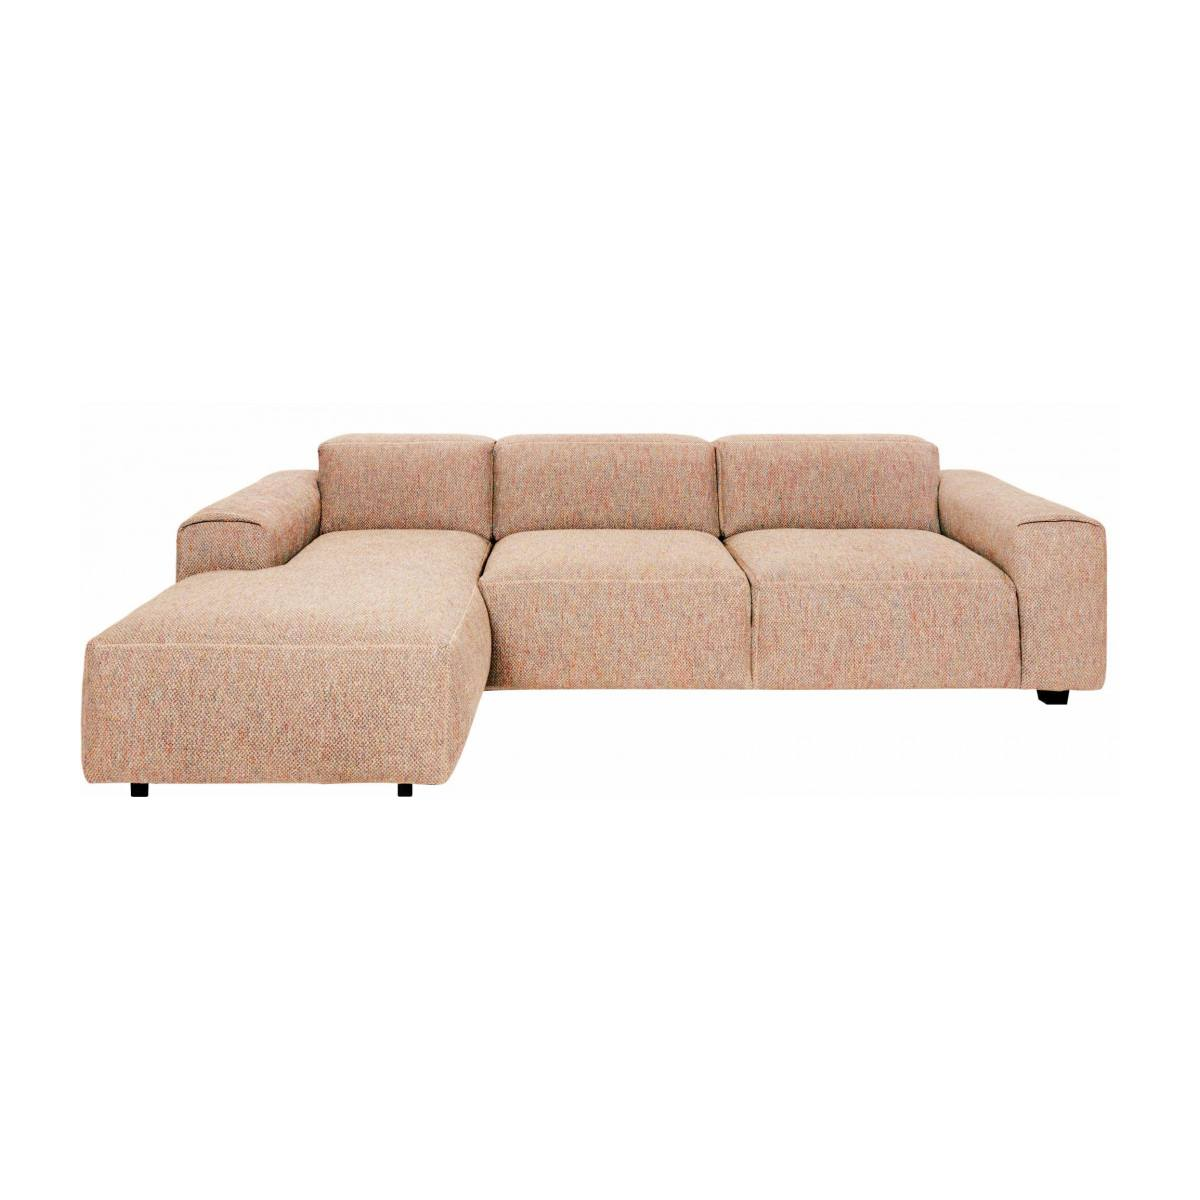 3-Sitzer Sofa mit Chaiselongue links aus Bellagio-Stoff - Orange n°2